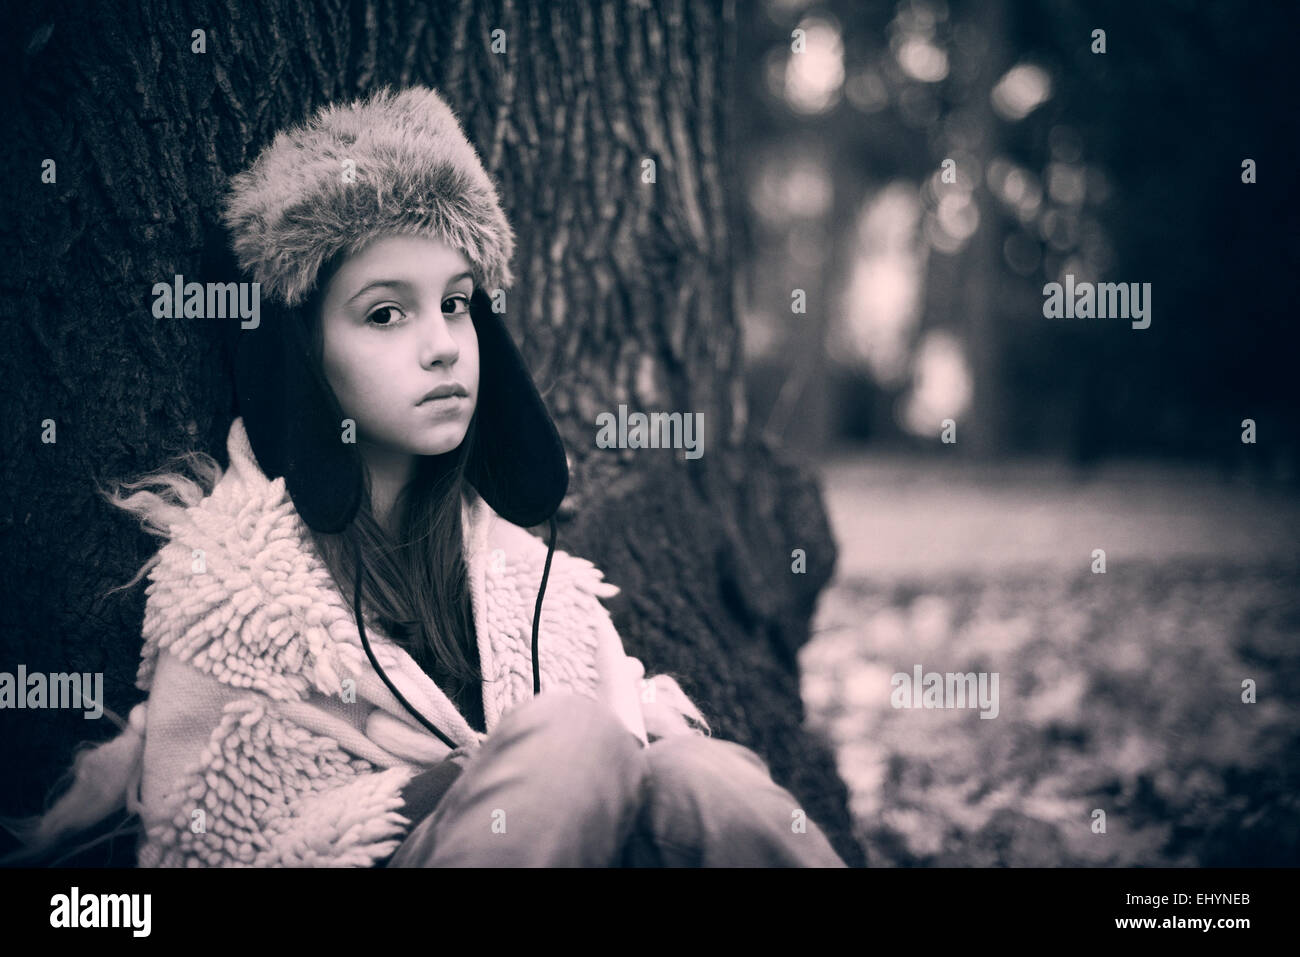 Sad girl leaning against a tree - Stock Image